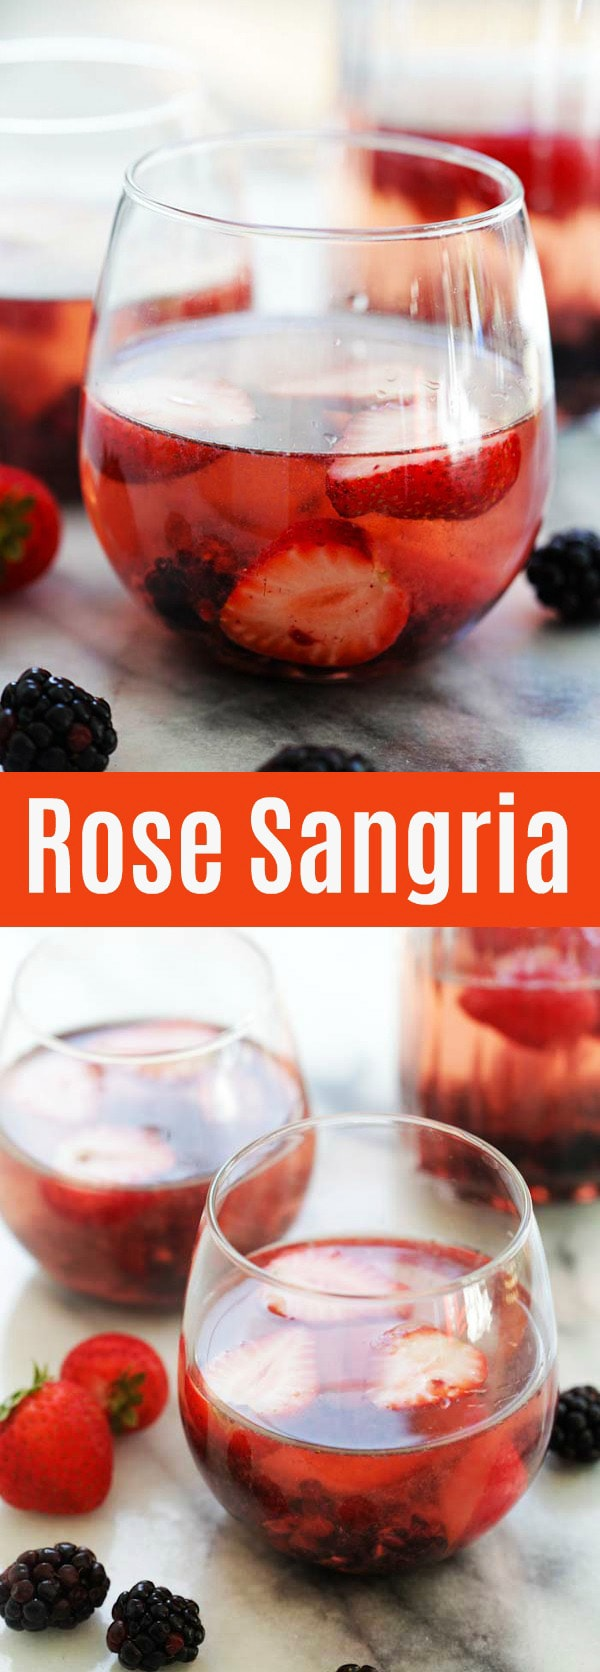 Rosé Sangria – the only summer drink you'll need. This Rosé Sangria recipe is refreshing, bubbly and loaded with summer berries | rasamalaysia.com